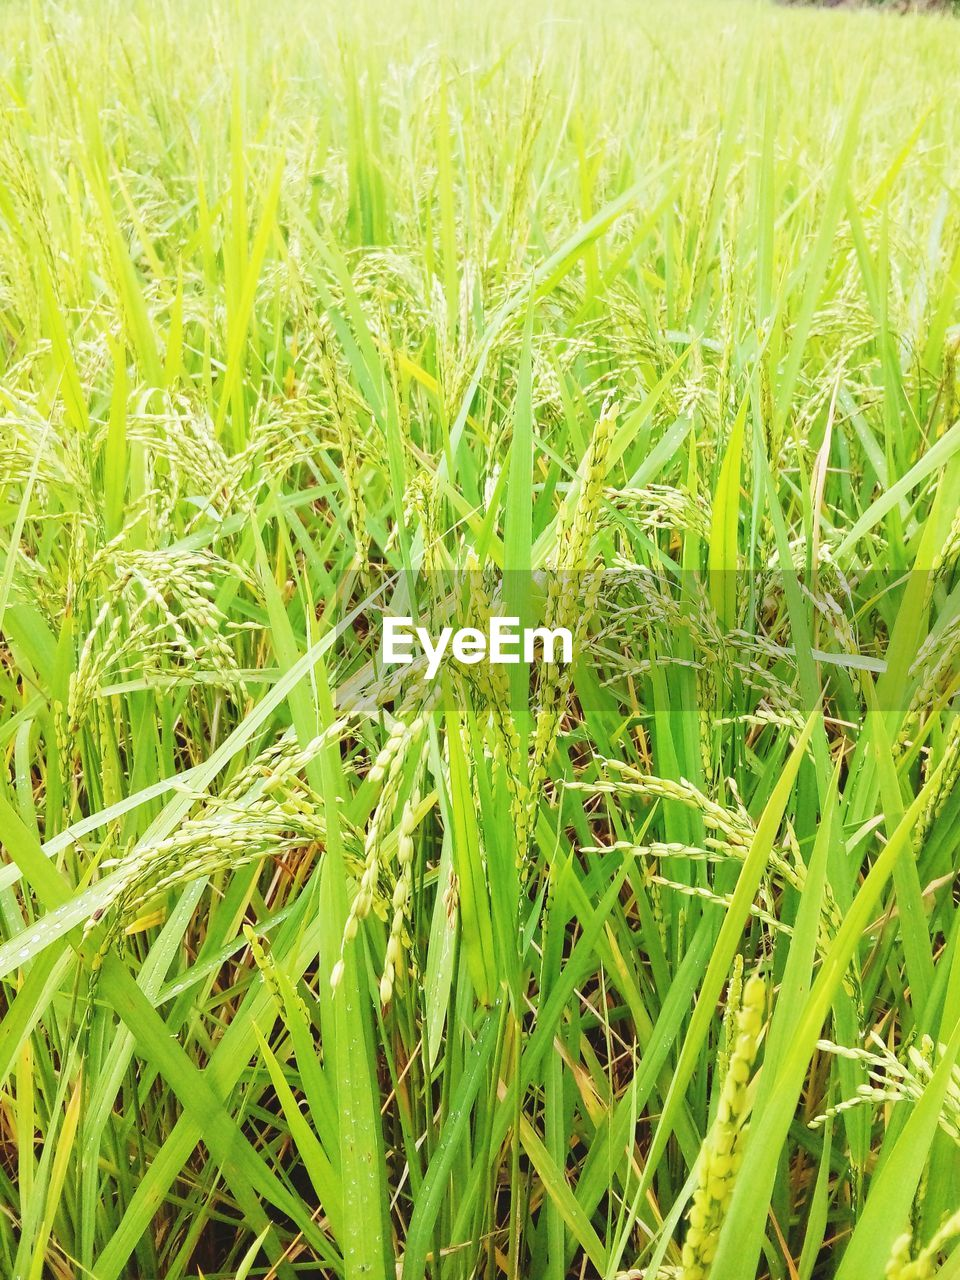 green color, plant, growth, field, beauty in nature, land, nature, agriculture, full frame, grass, day, close-up, tranquility, no people, backgrounds, rural scene, crop, landscape, farm, cereal plant, outdoors, blade of grass